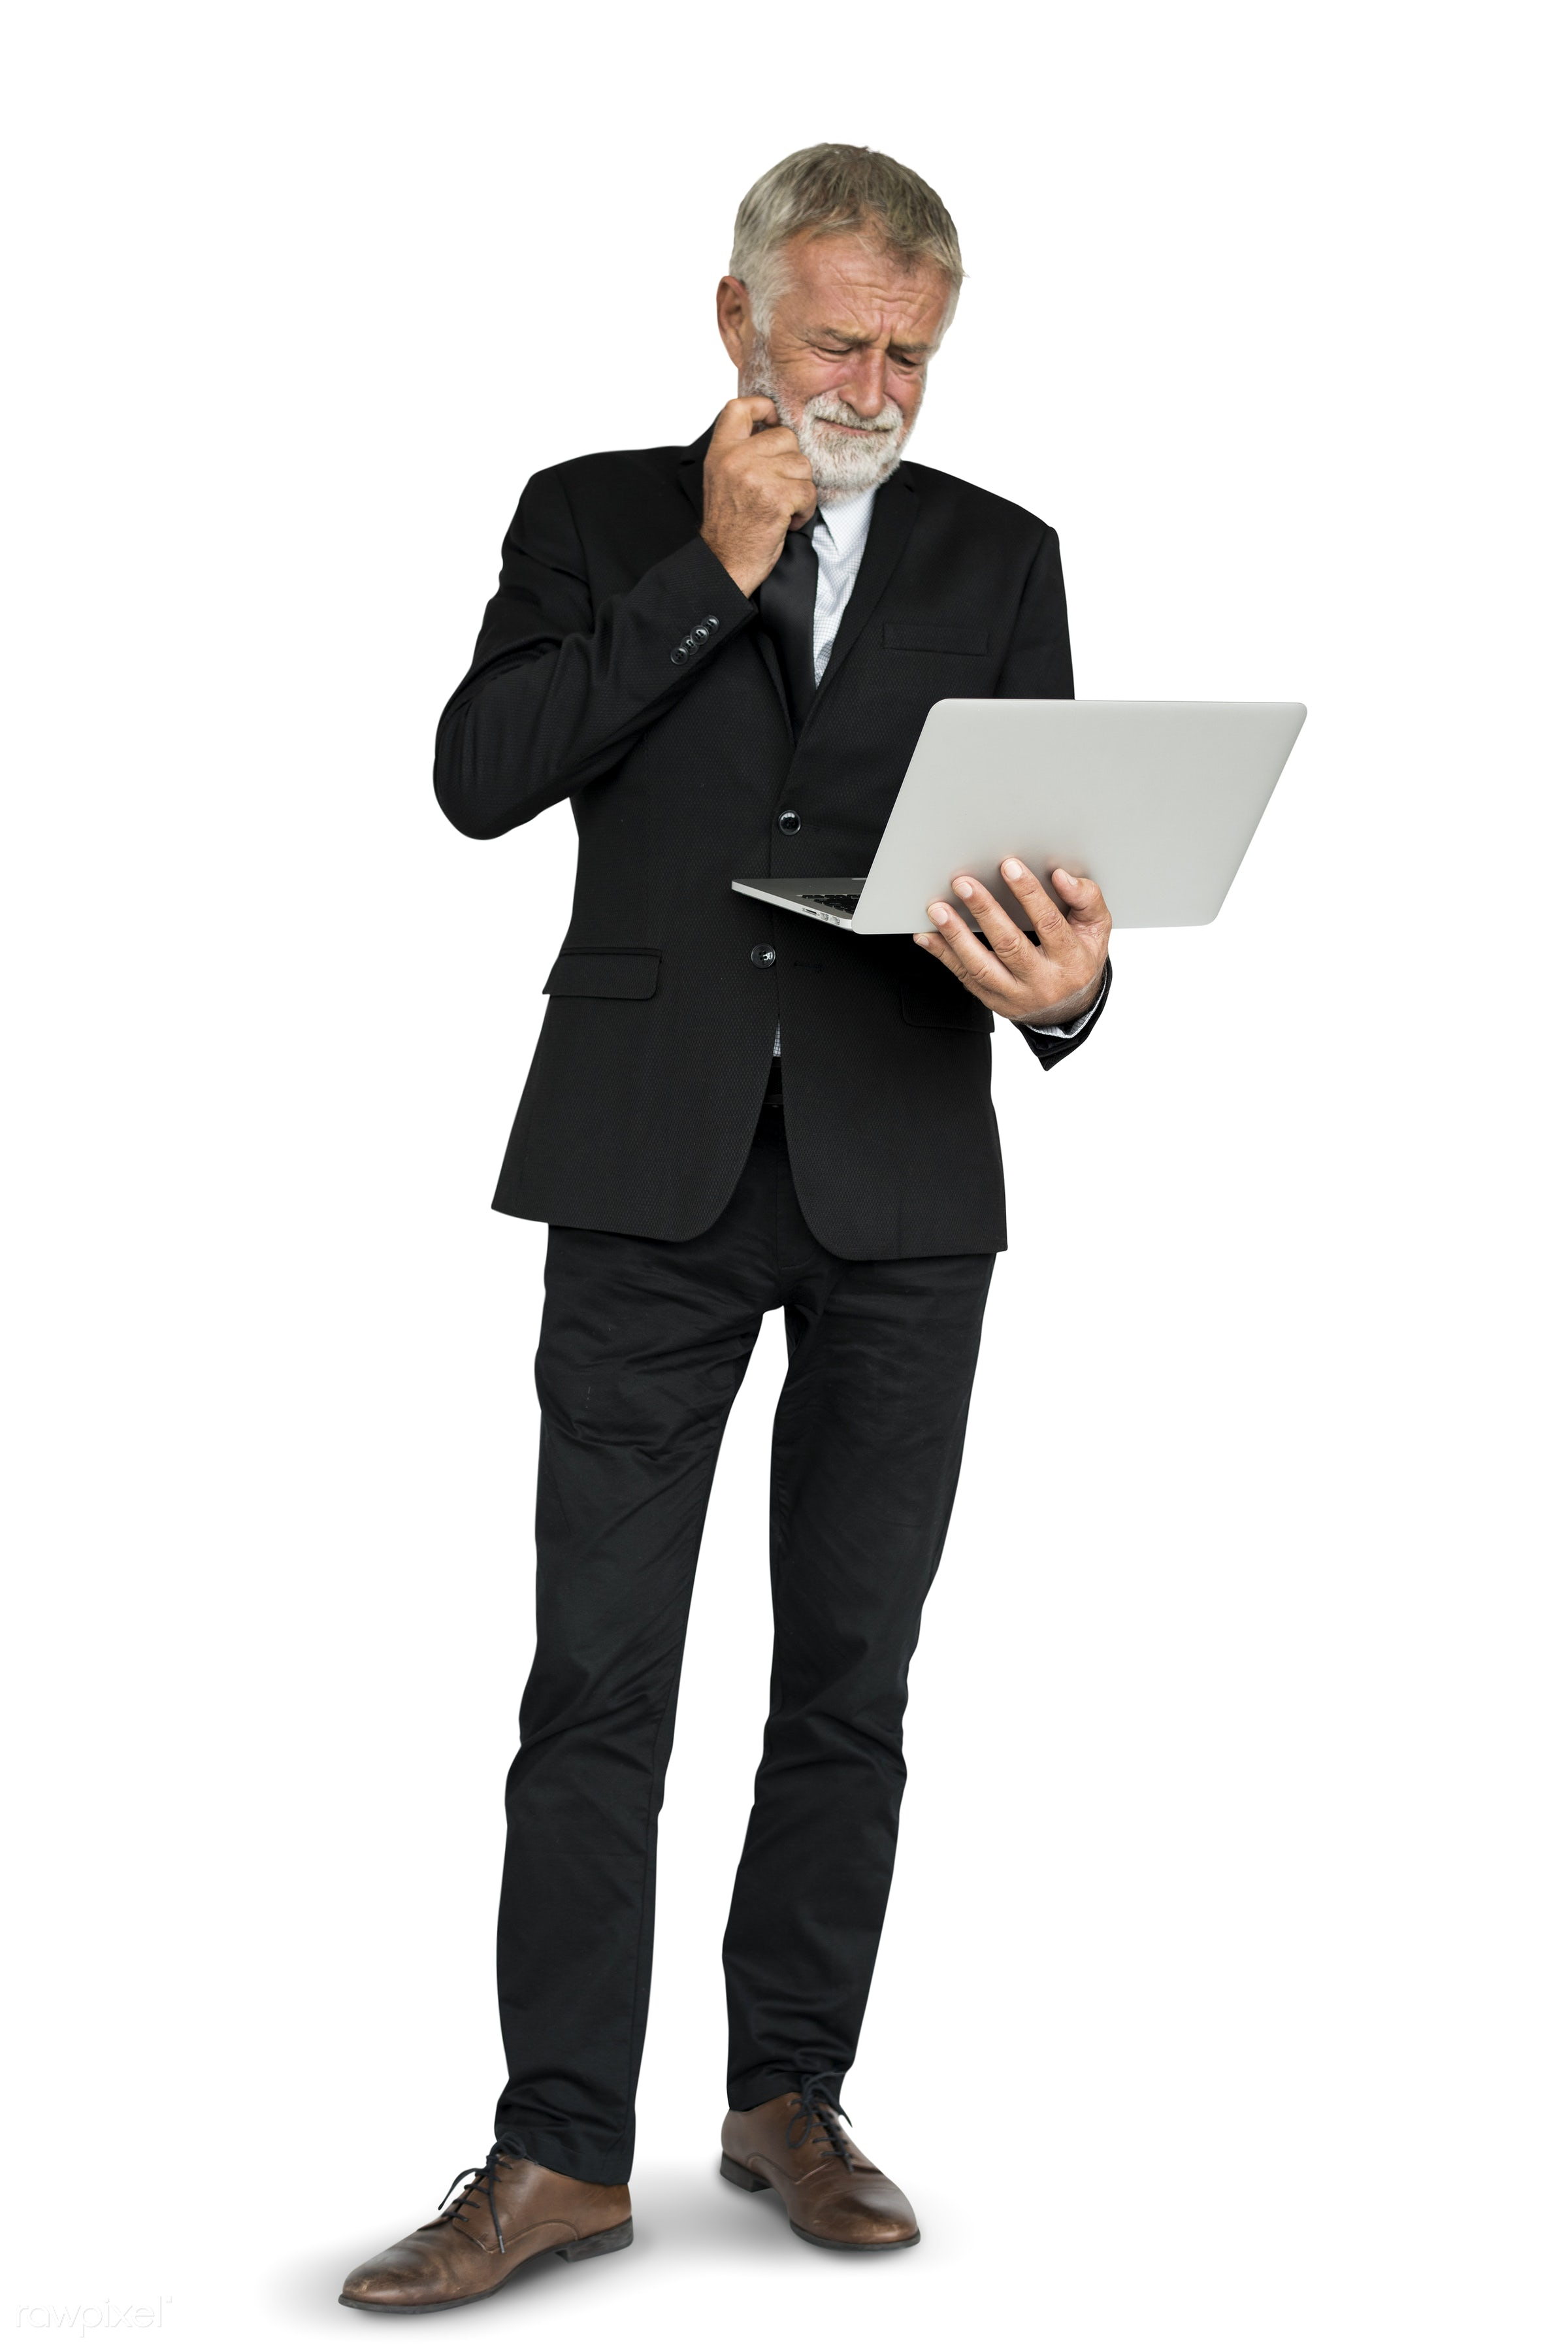 isolated on white, business man, hold, holding, laptop, man, stand, standing, suit, think, thinking